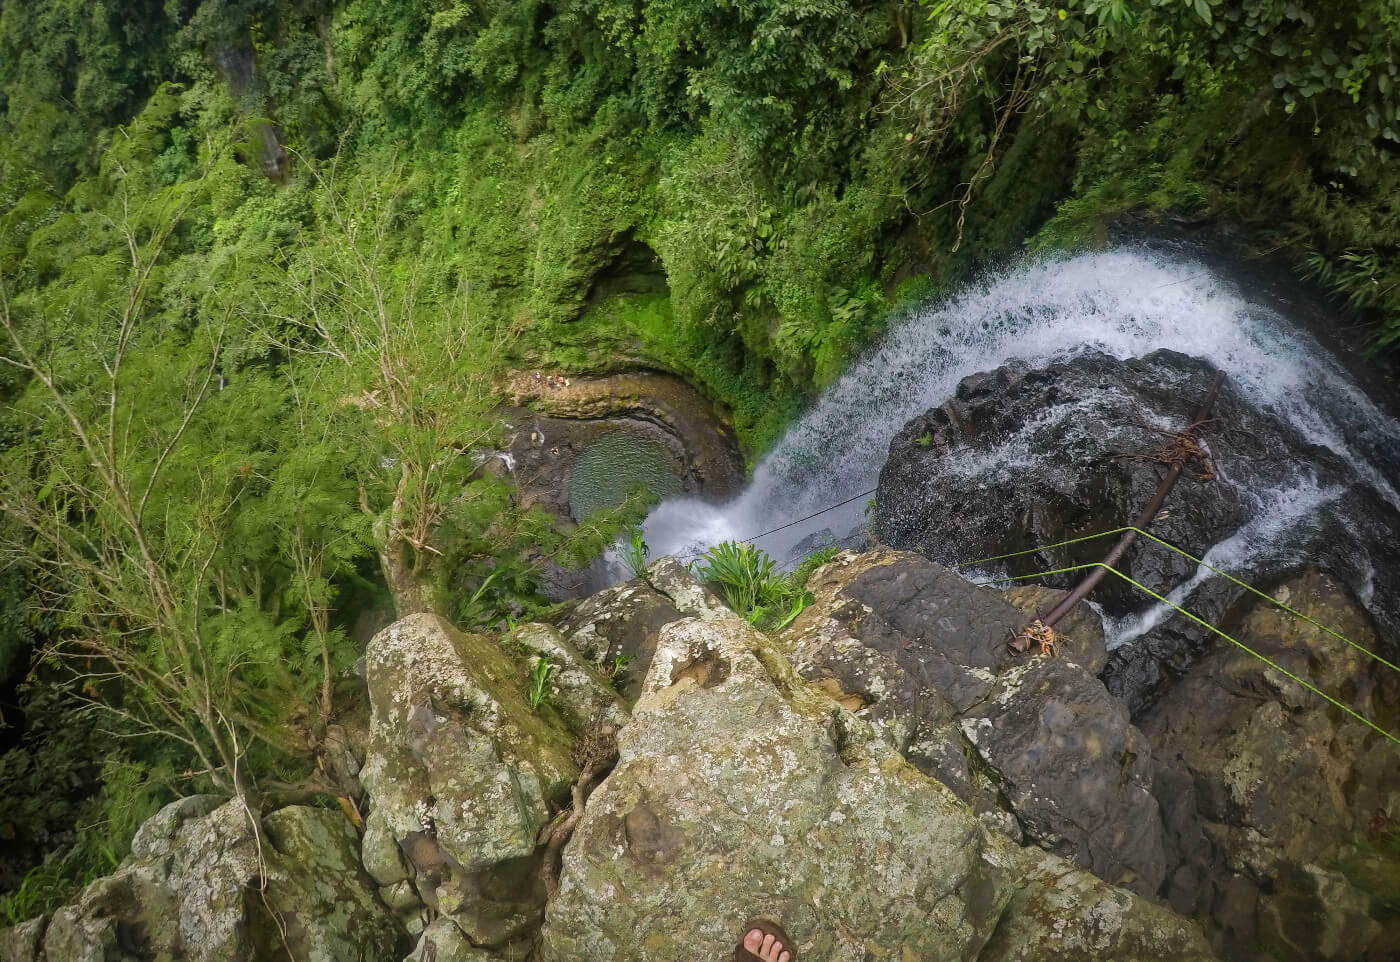 Peering into the depths from Juan Curi Waterfall in San Gil, Colombia before waterfall rappelling down.